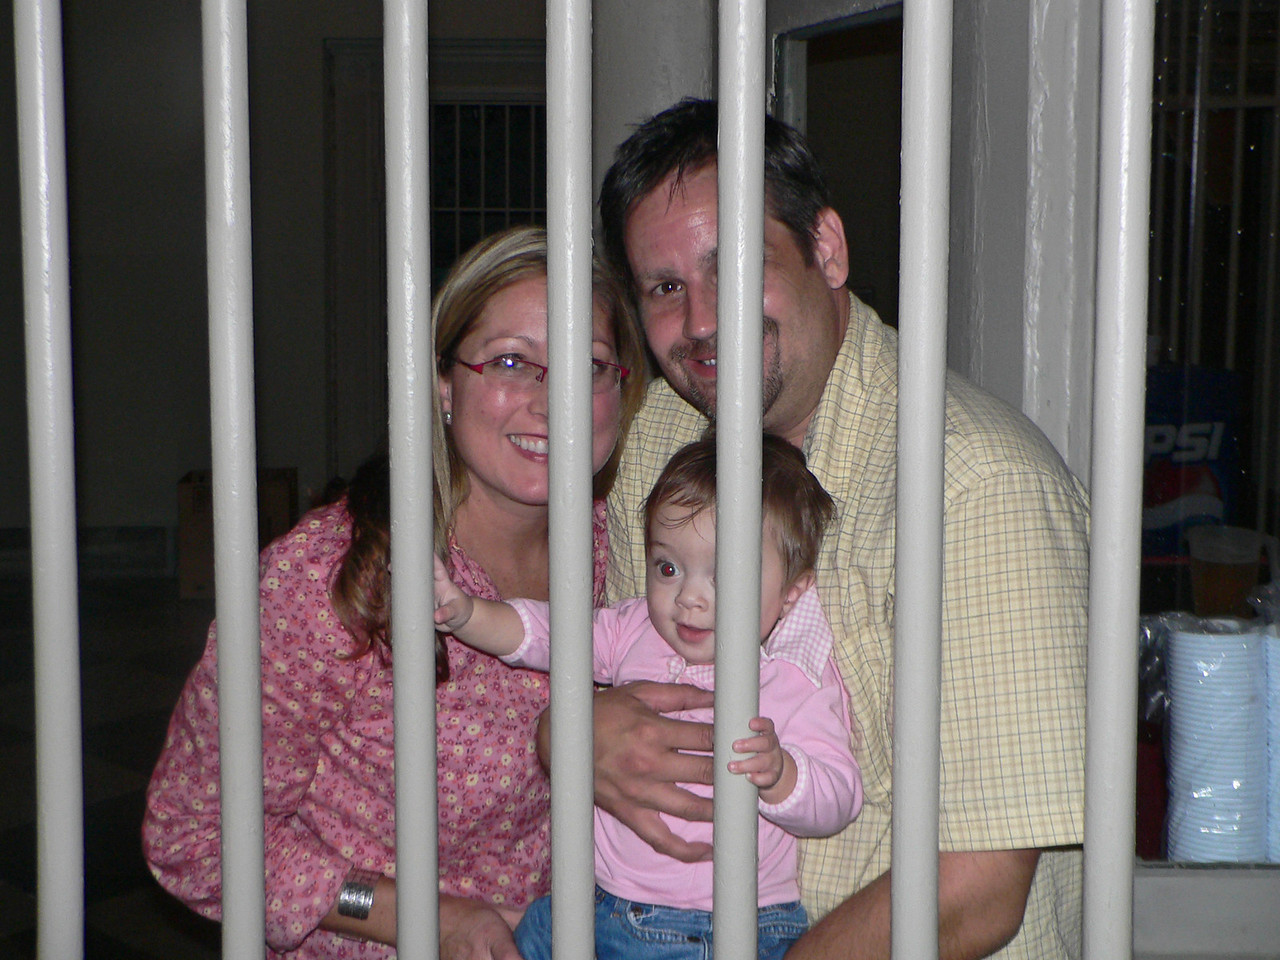 Claire doesn't look too upset about being behind bars, which could spell trouble.